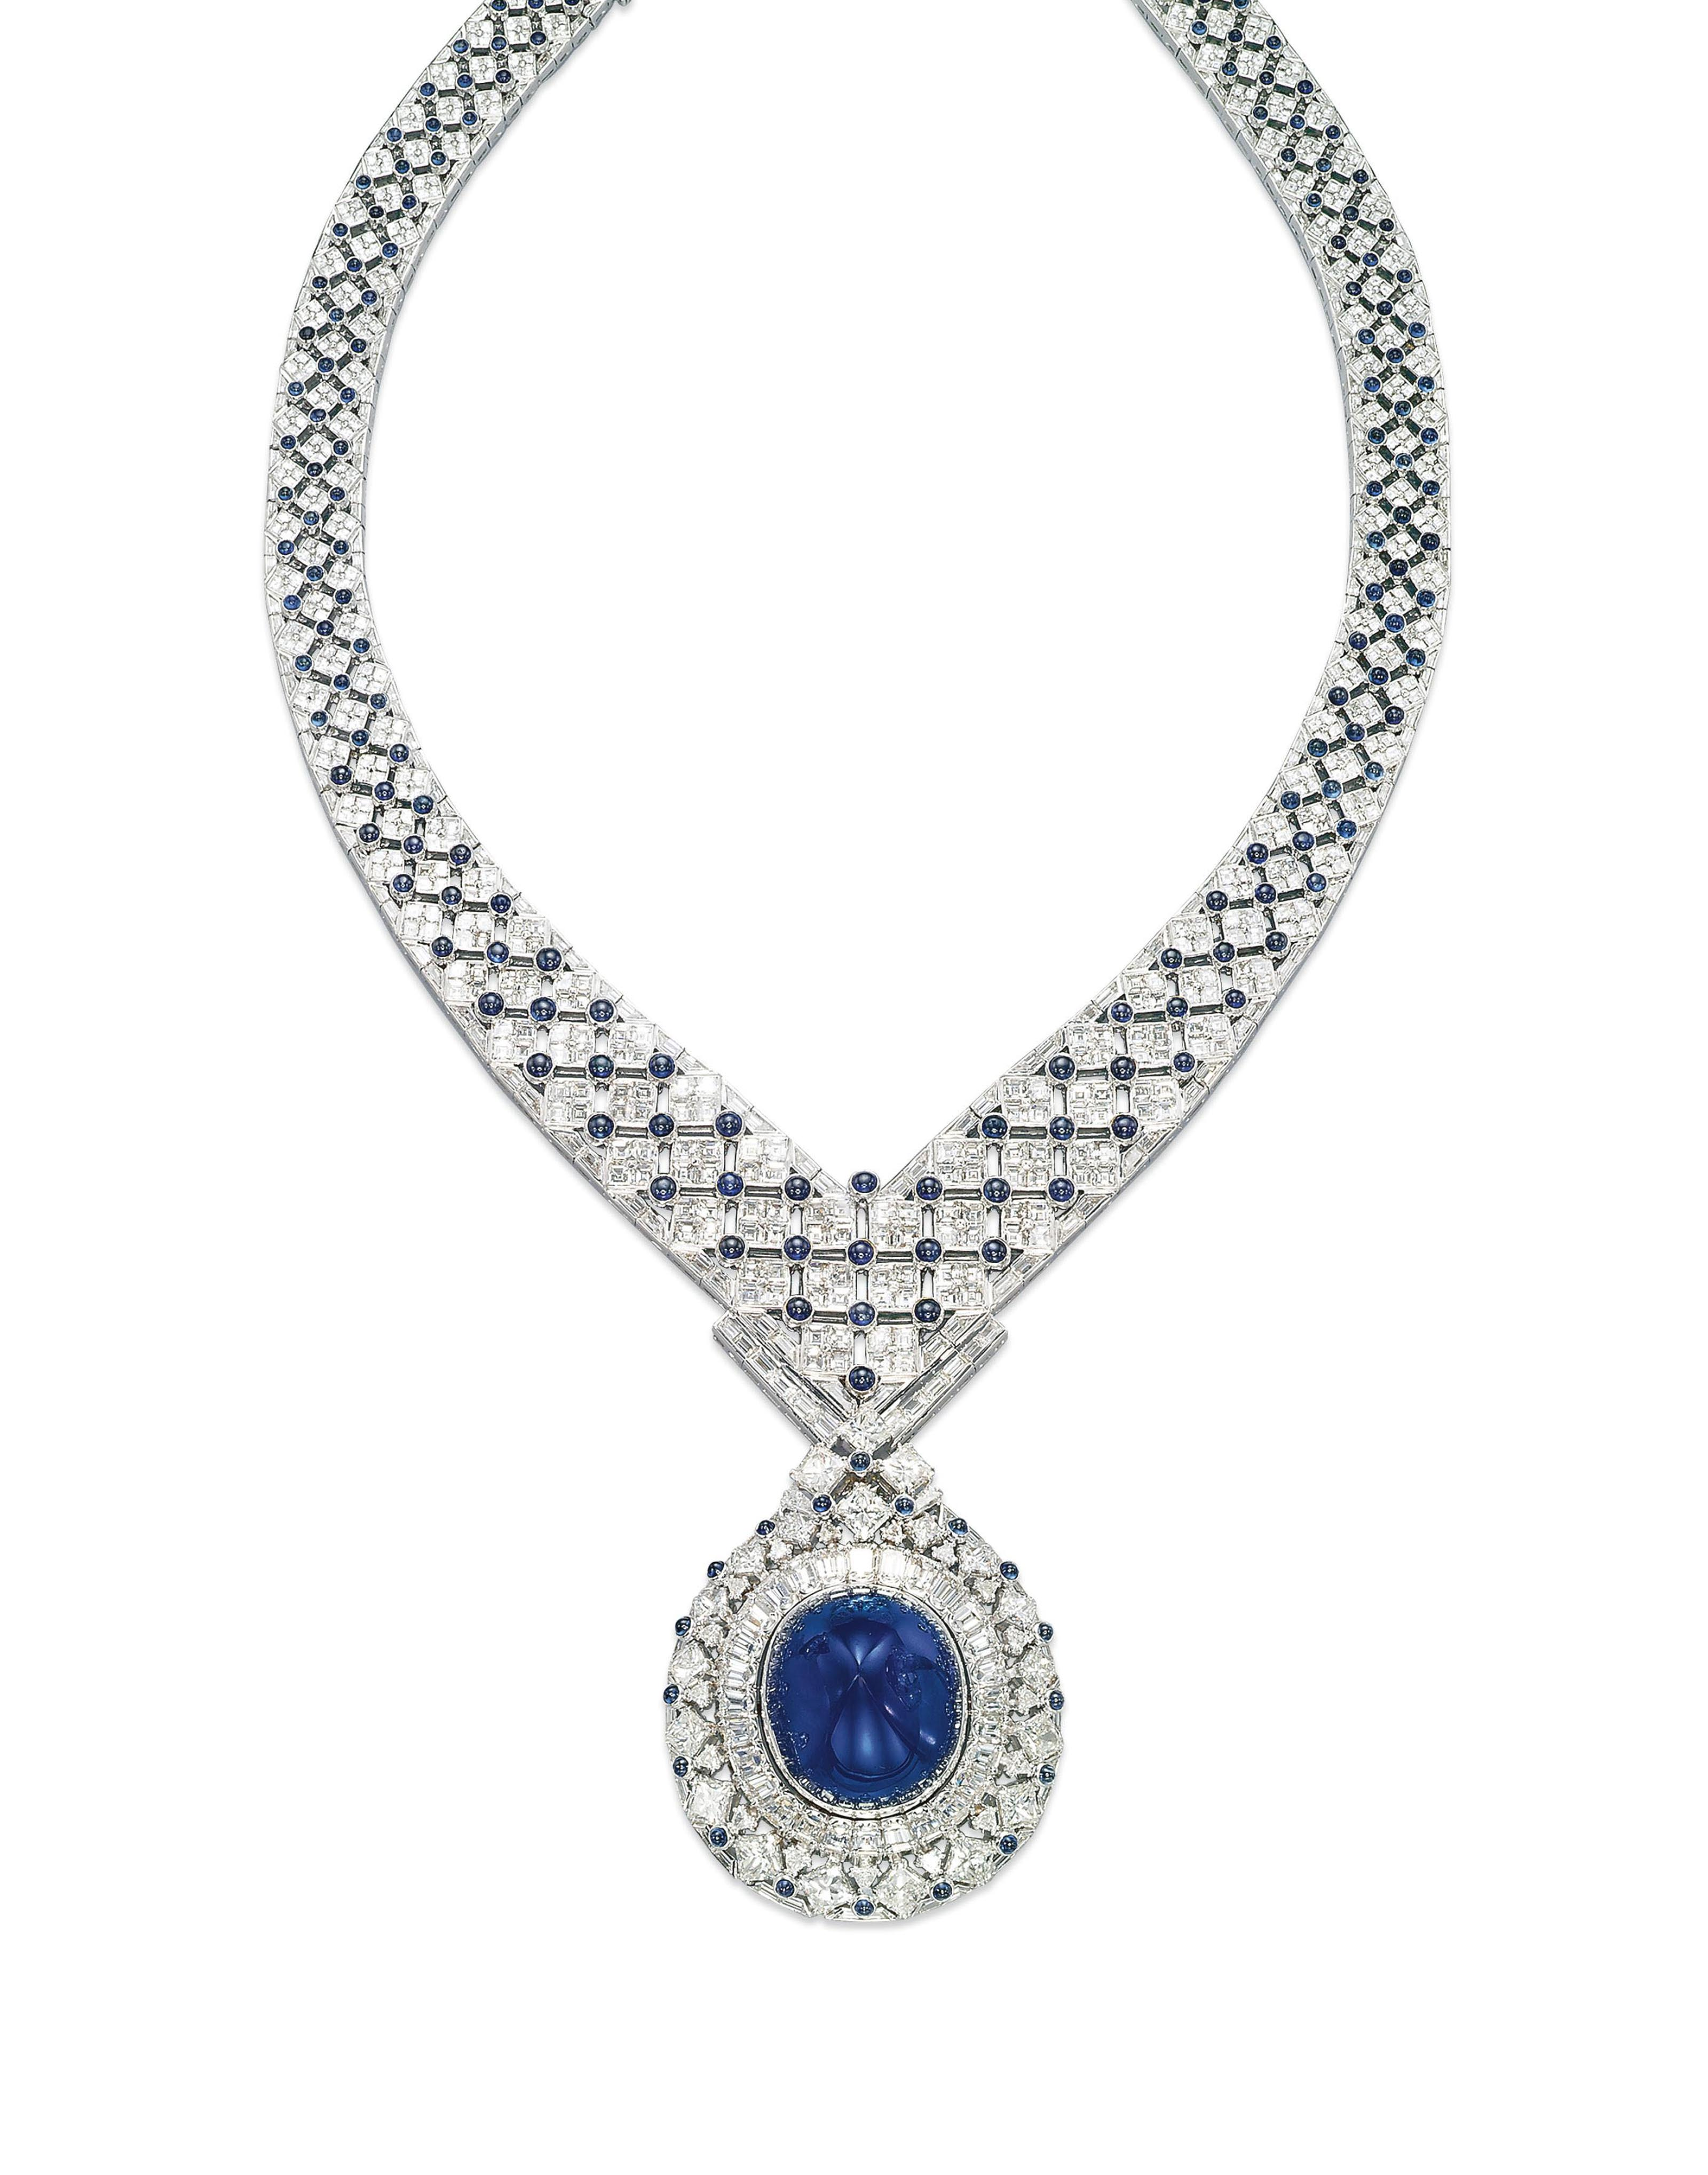 A SAPPHIRE AND DIAMOND NECKLACE, BY MOUAWAD